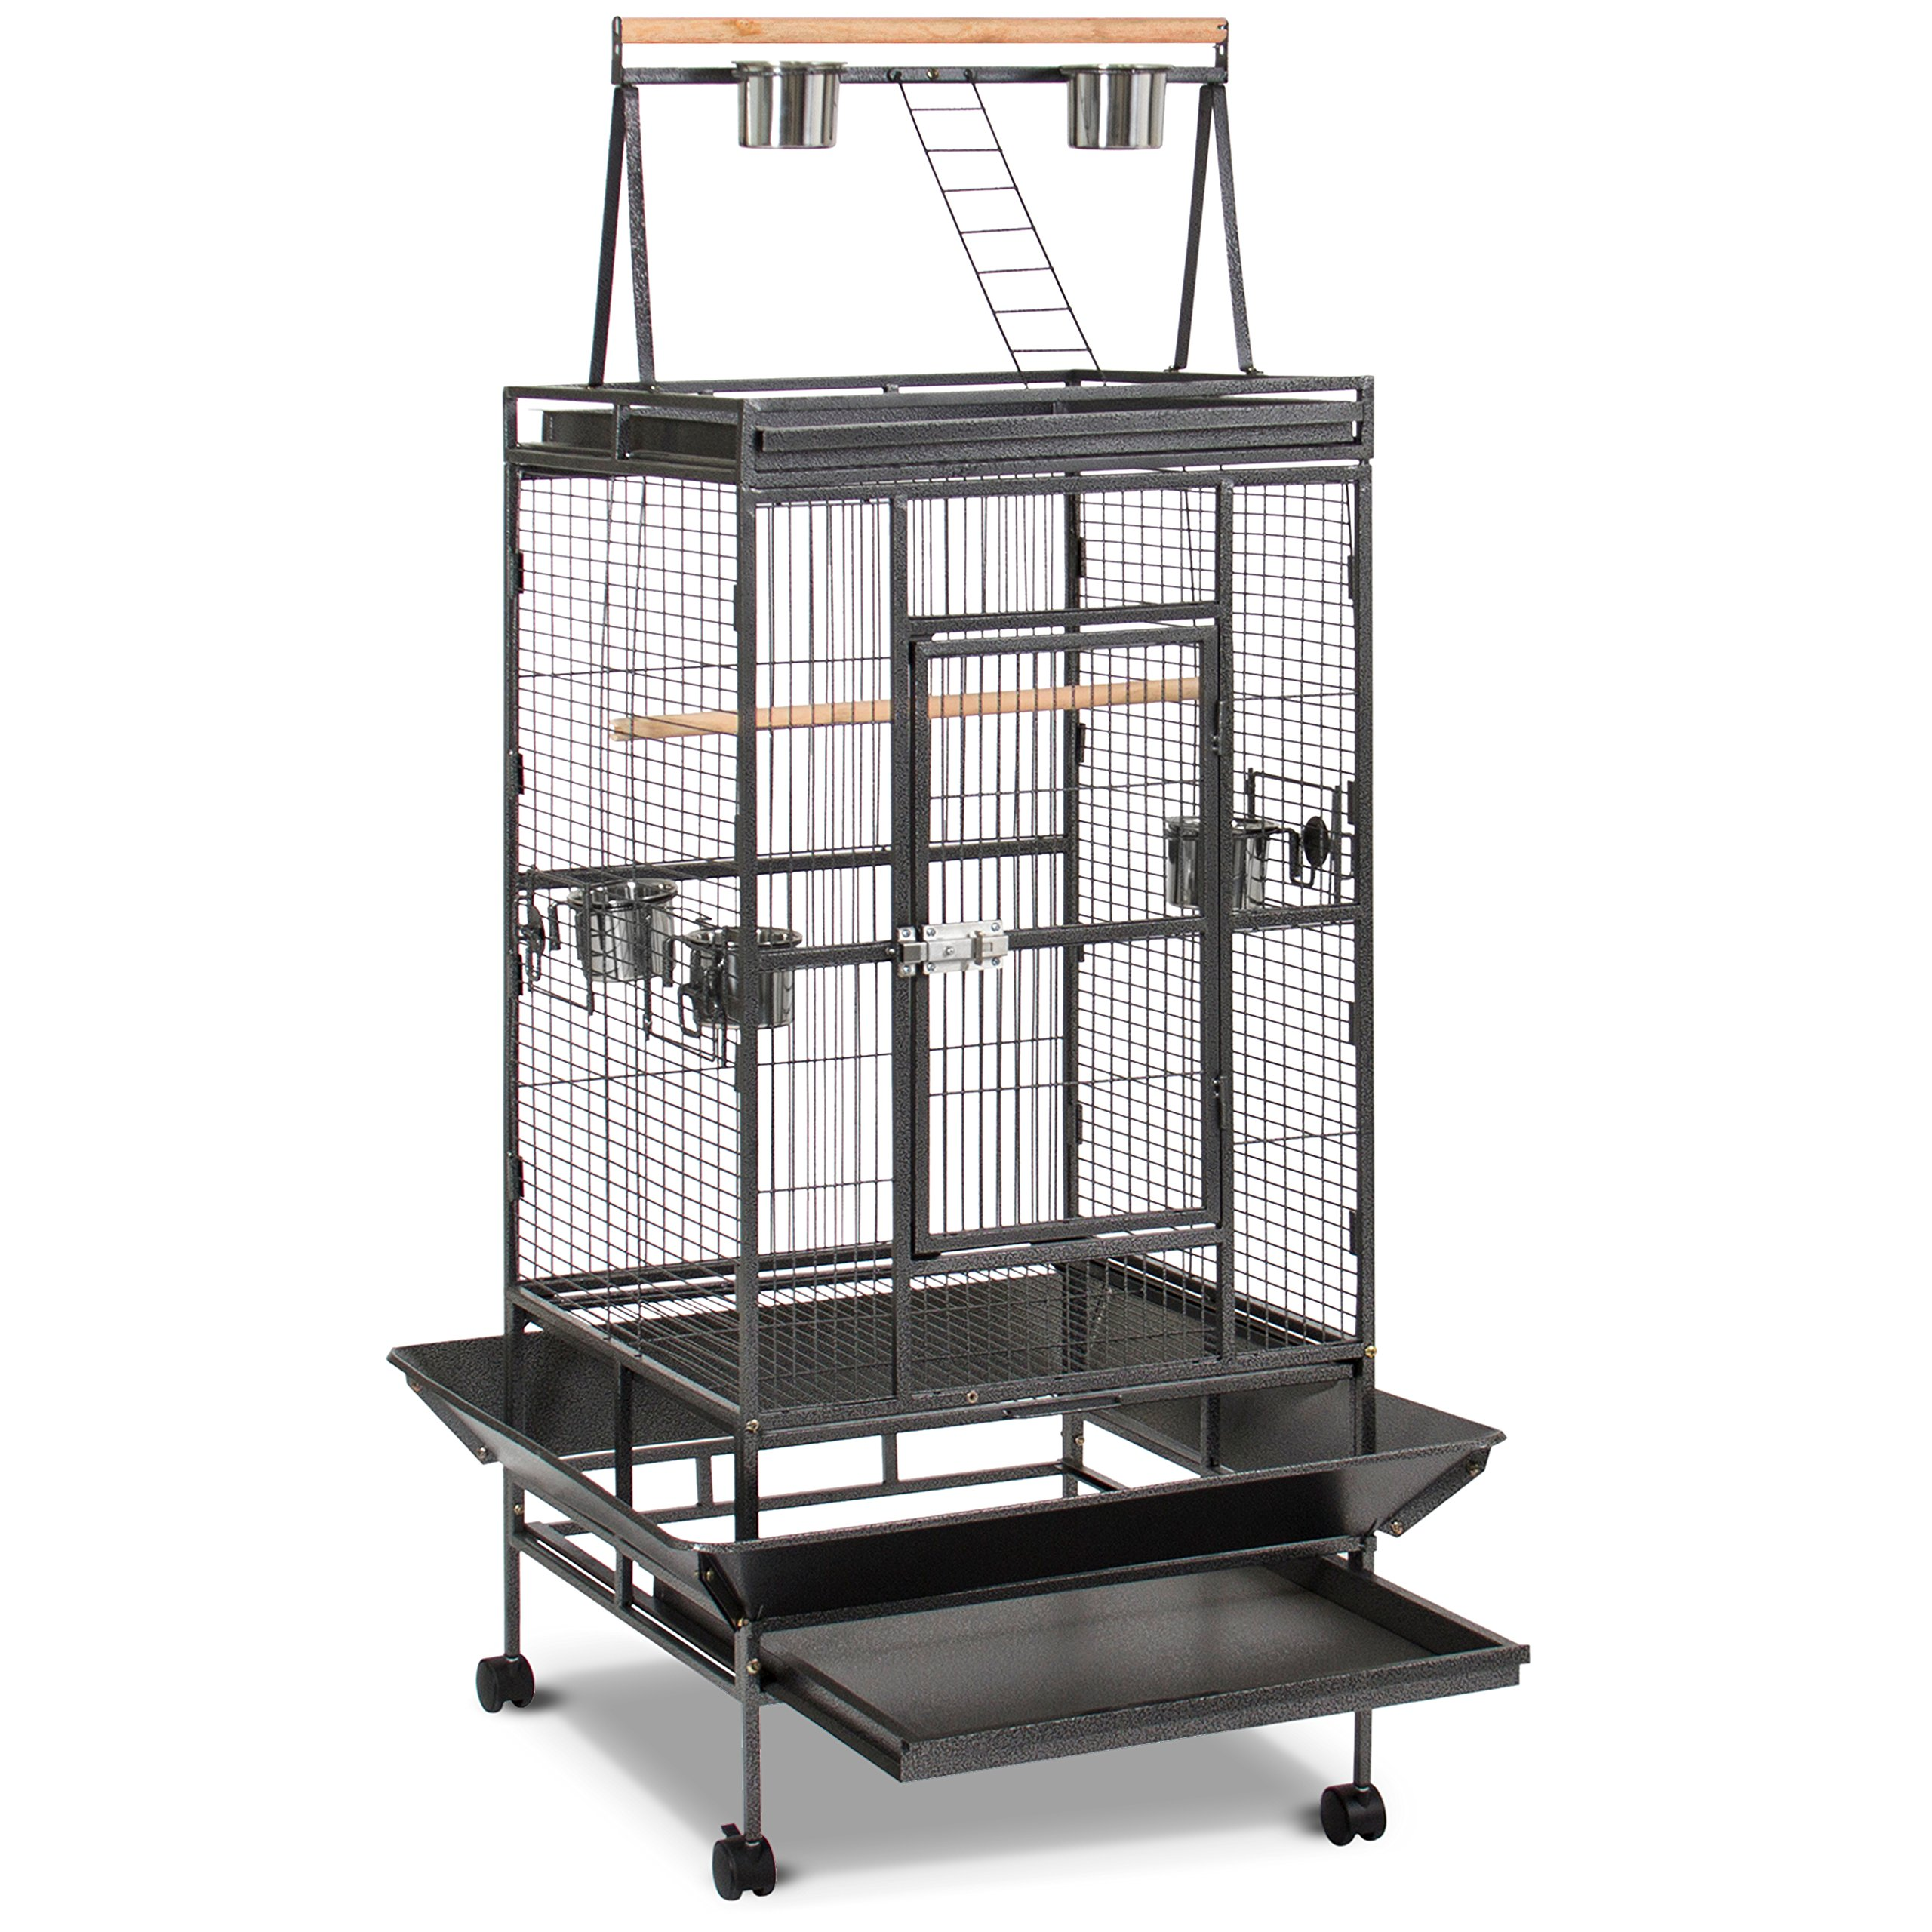 Best Choice Products New Large Play Top Bird Cage Parrot Finch Macaw Cockatoo Birdcages by Best Choice Products